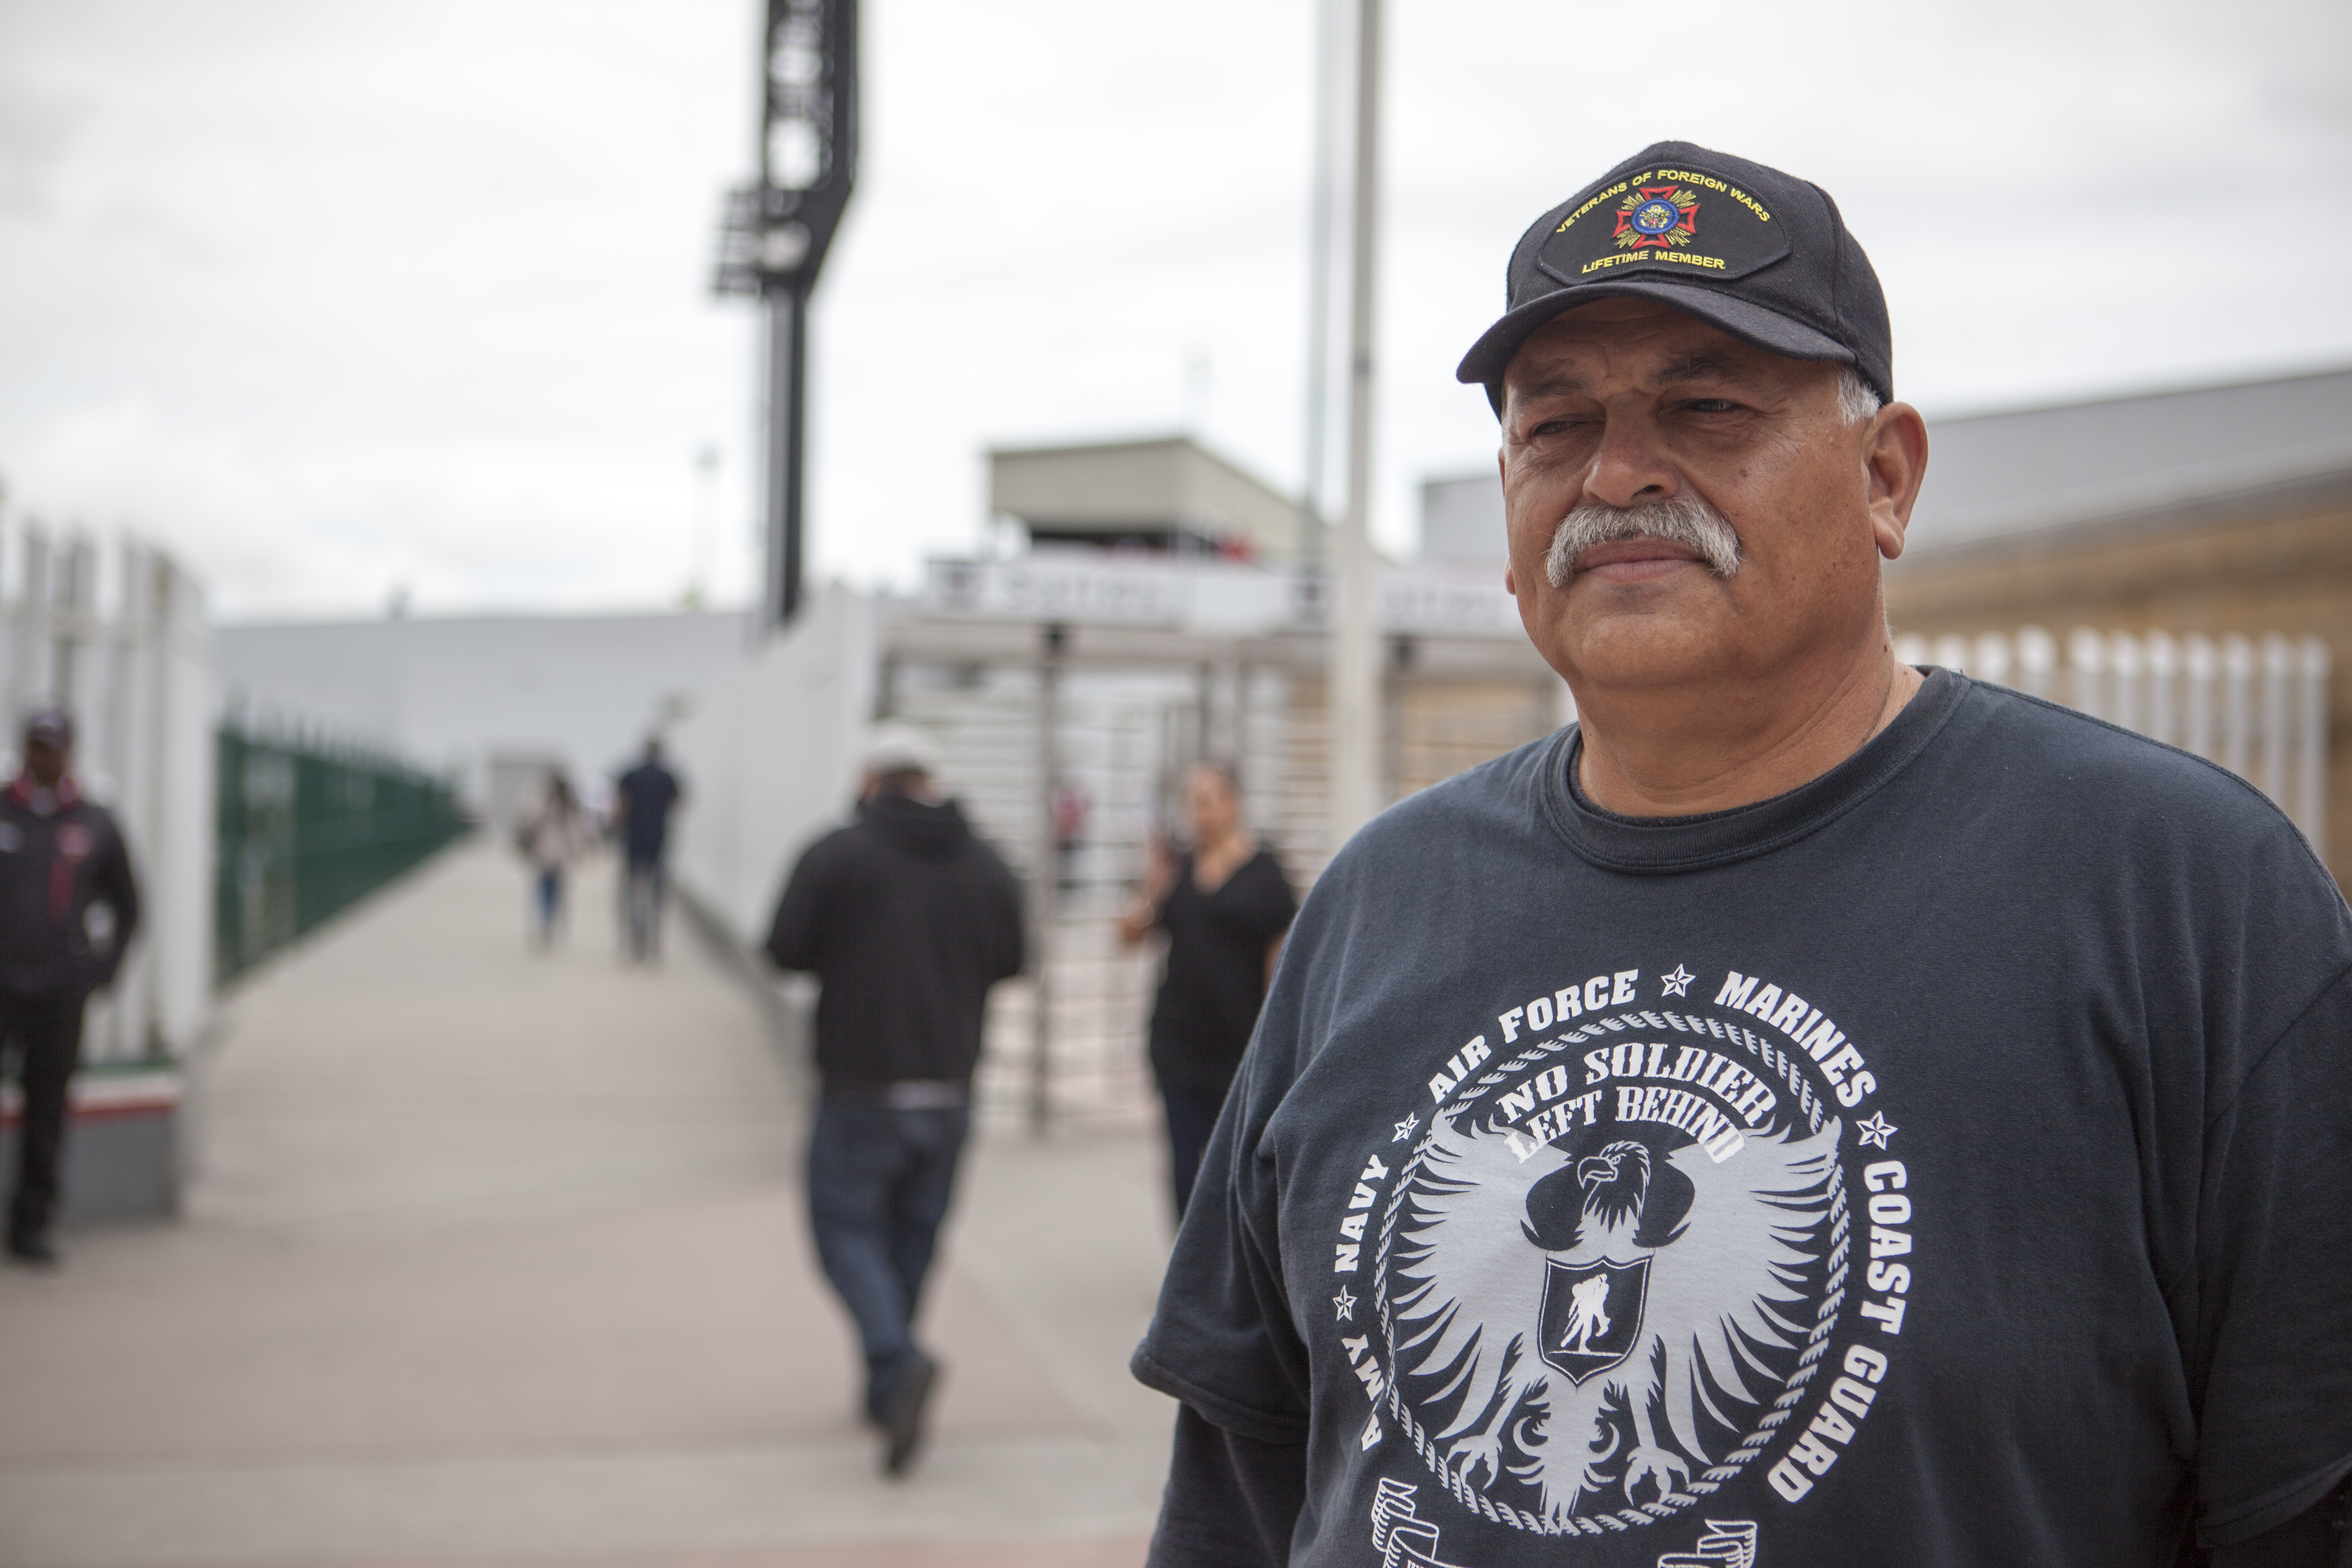 Hector Lopez, director of the organization Unified U.S. Deported Veterans, stands outside the walkway where deportees arrive in Tijuana, Mexico on May 7, 2019.